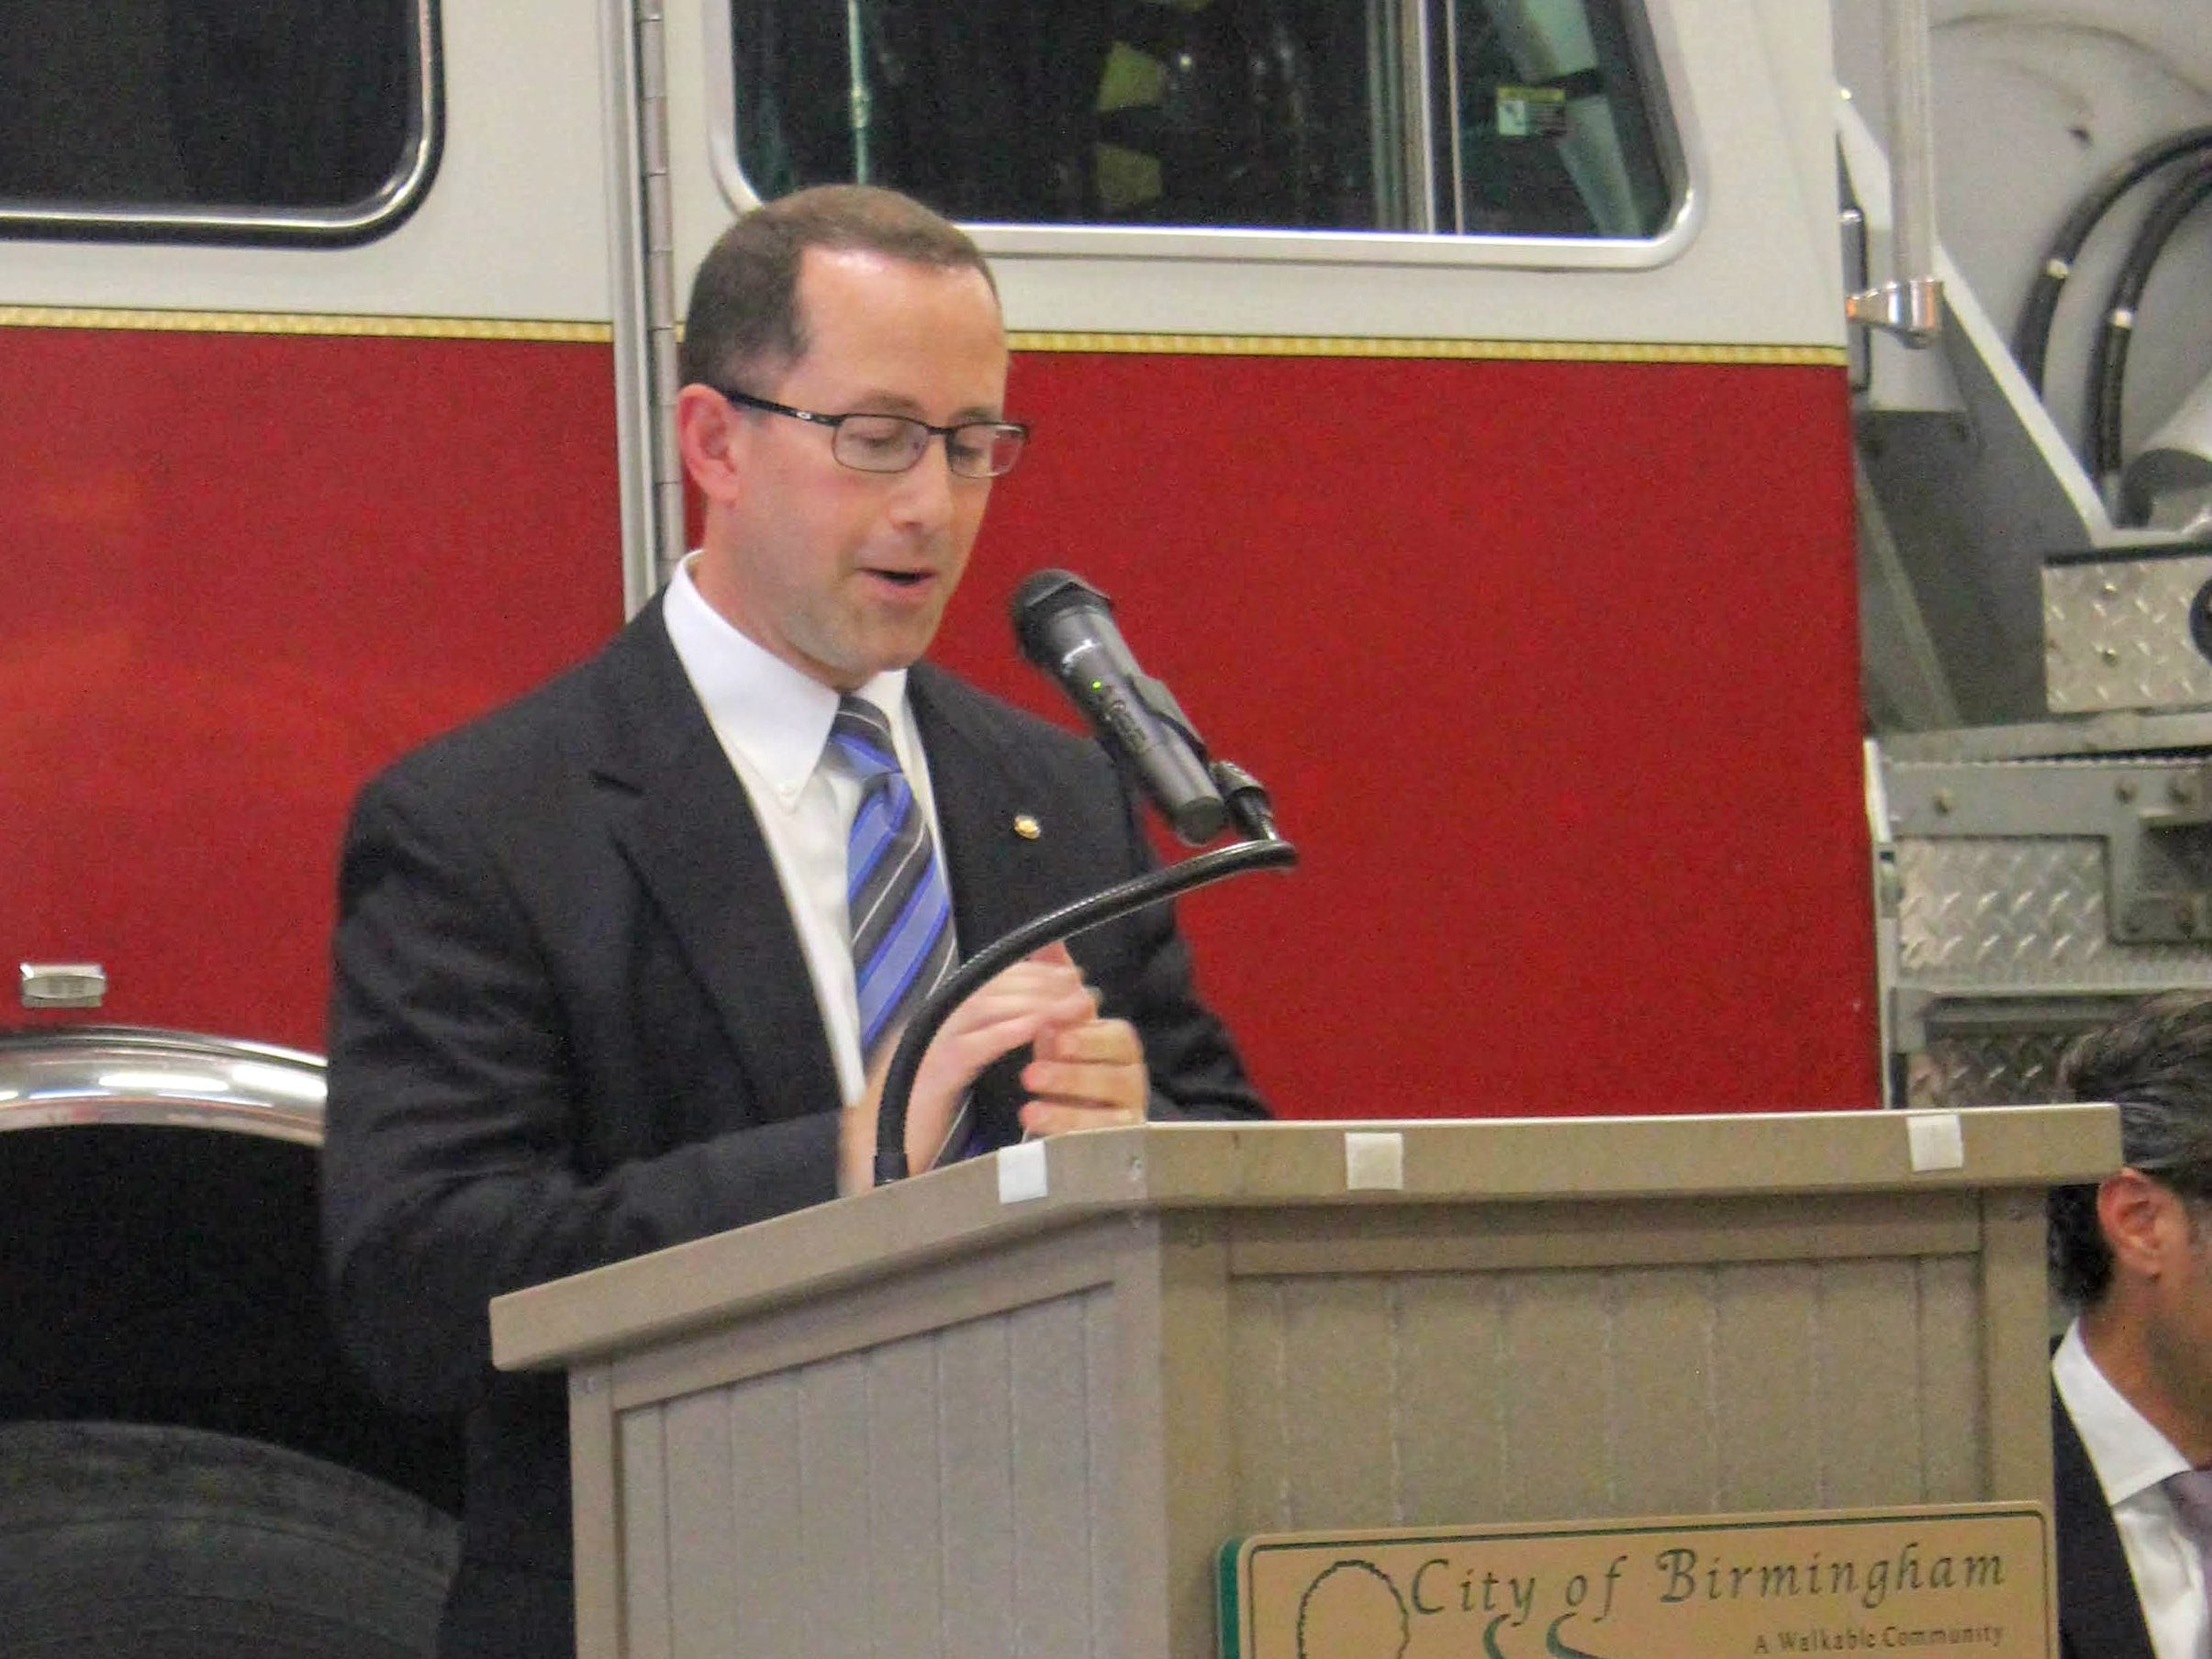 Birmingham City Manager Joe Valentine speaks at the Chesterfield Fire Station grand opening Oct. 8.